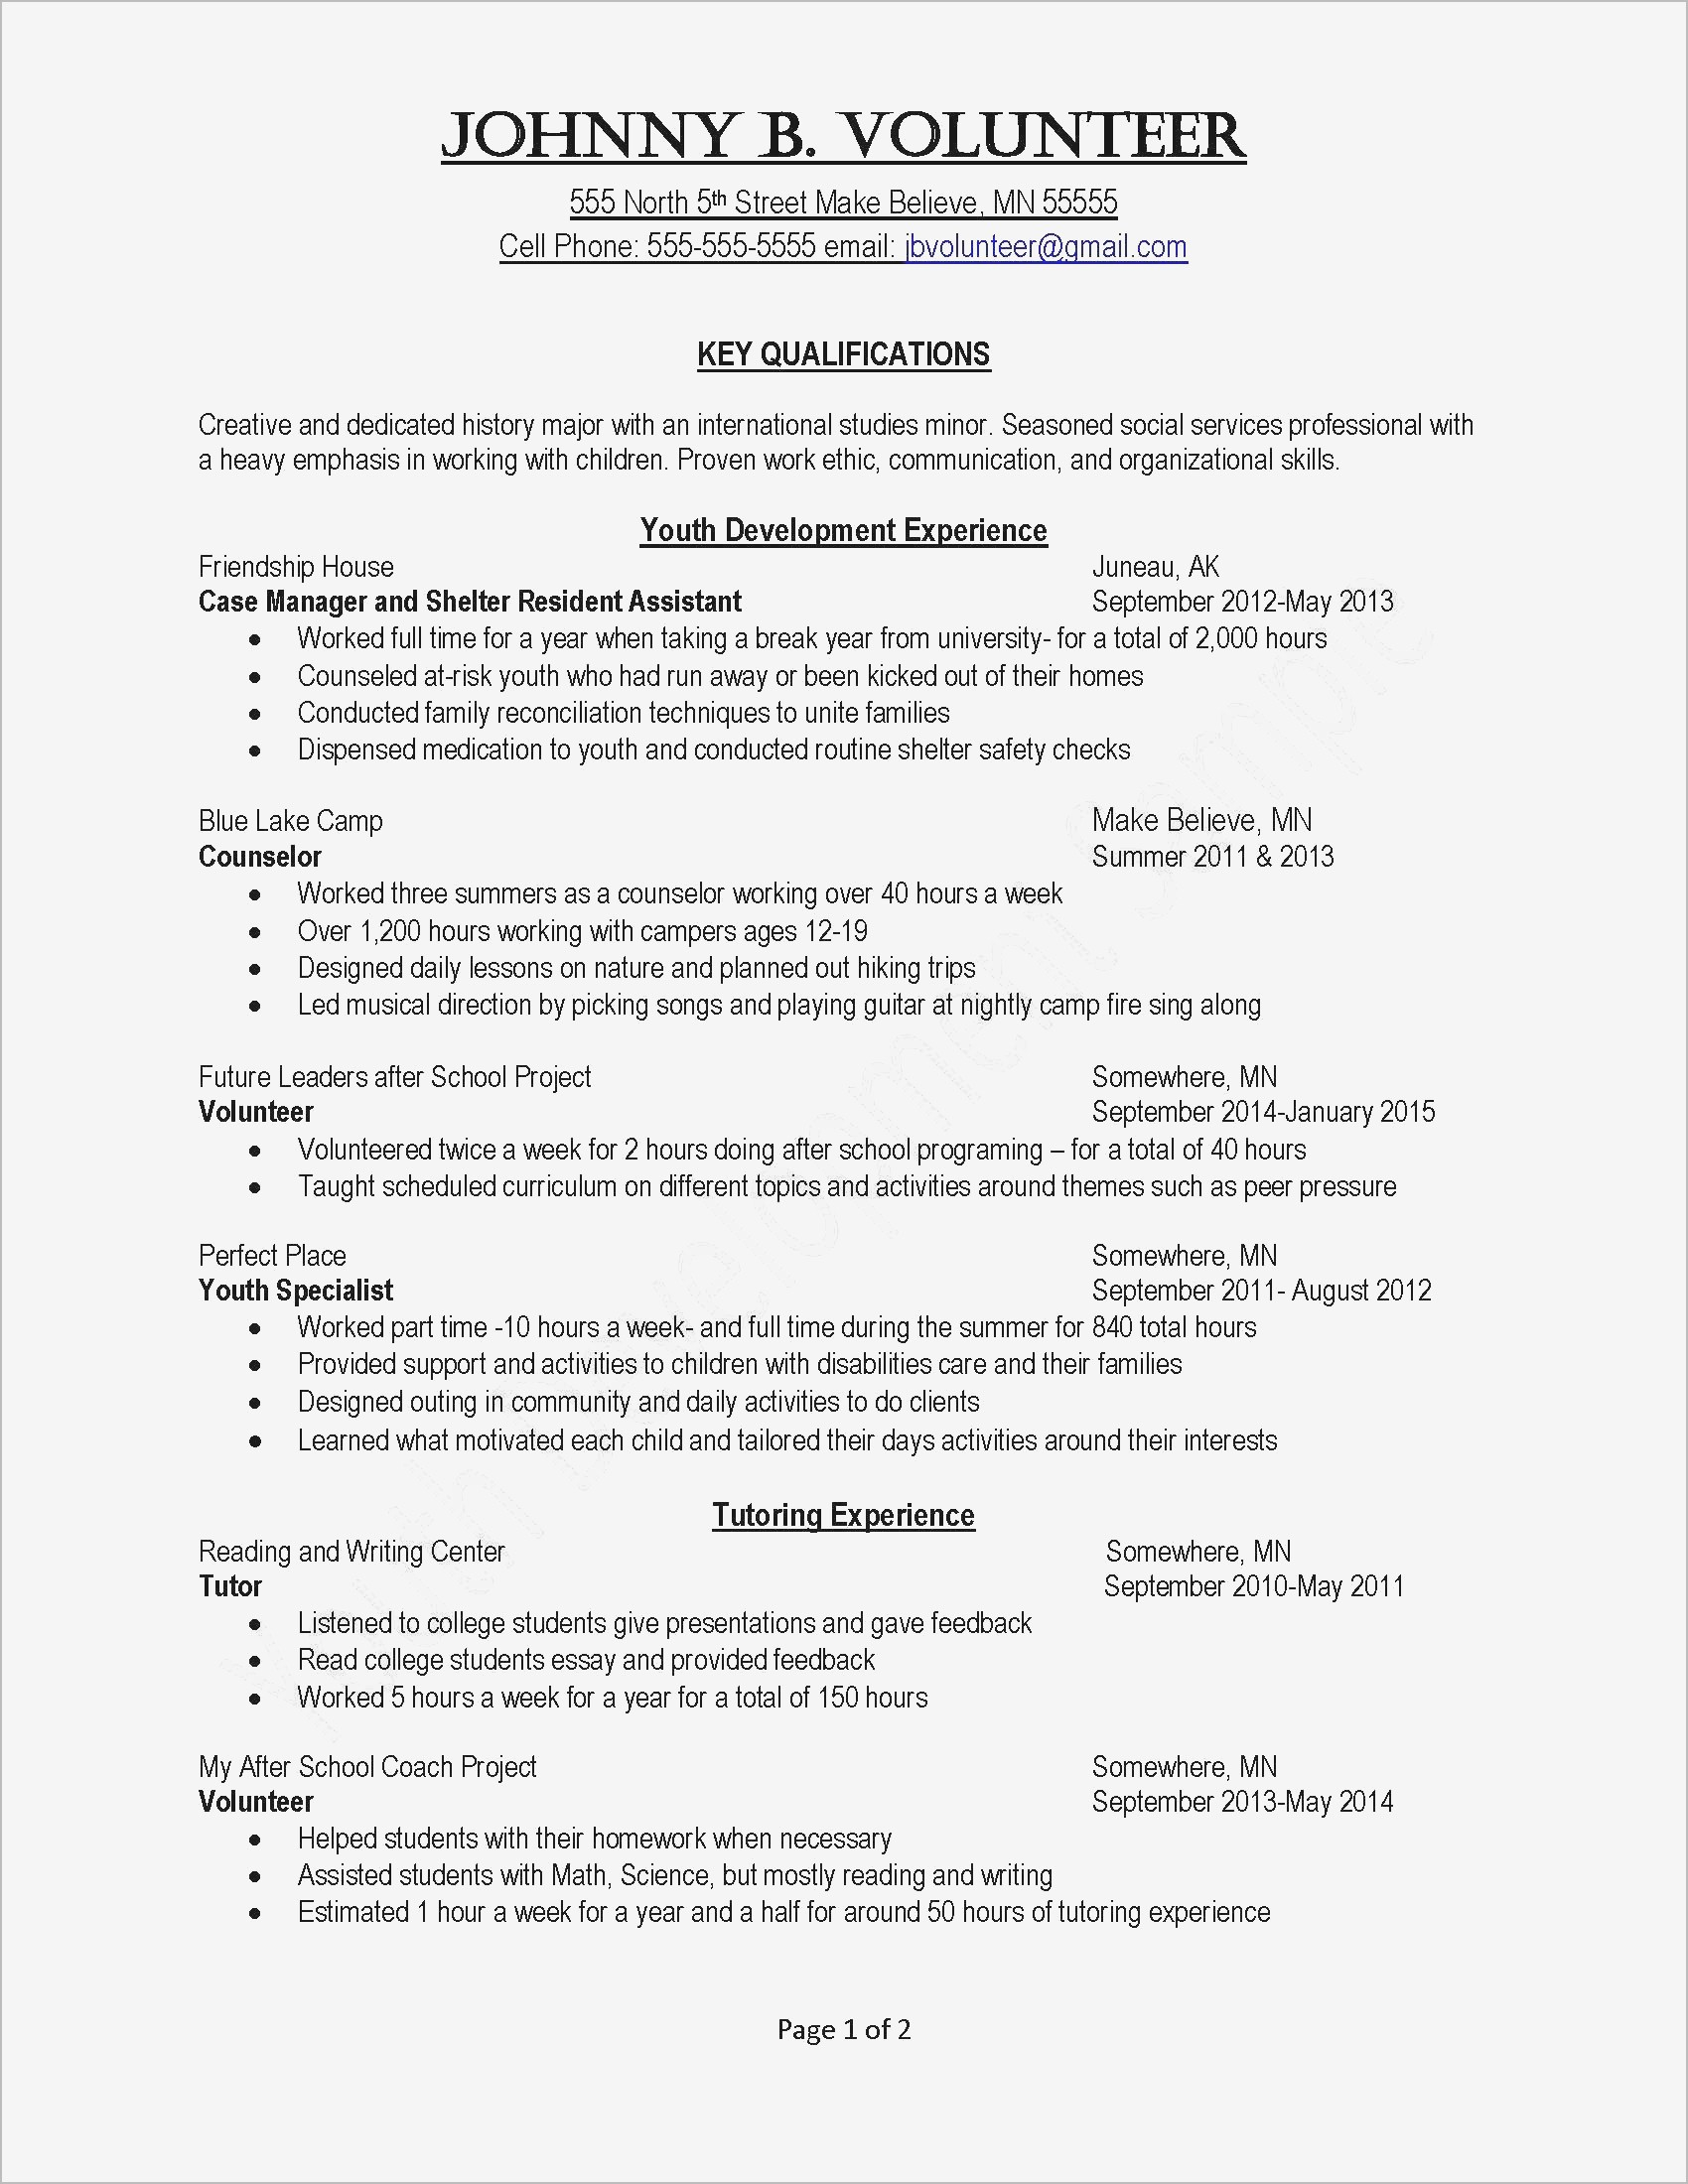 Resume Cover Letter Template Pdf - Email Resume Cover Letter Samples